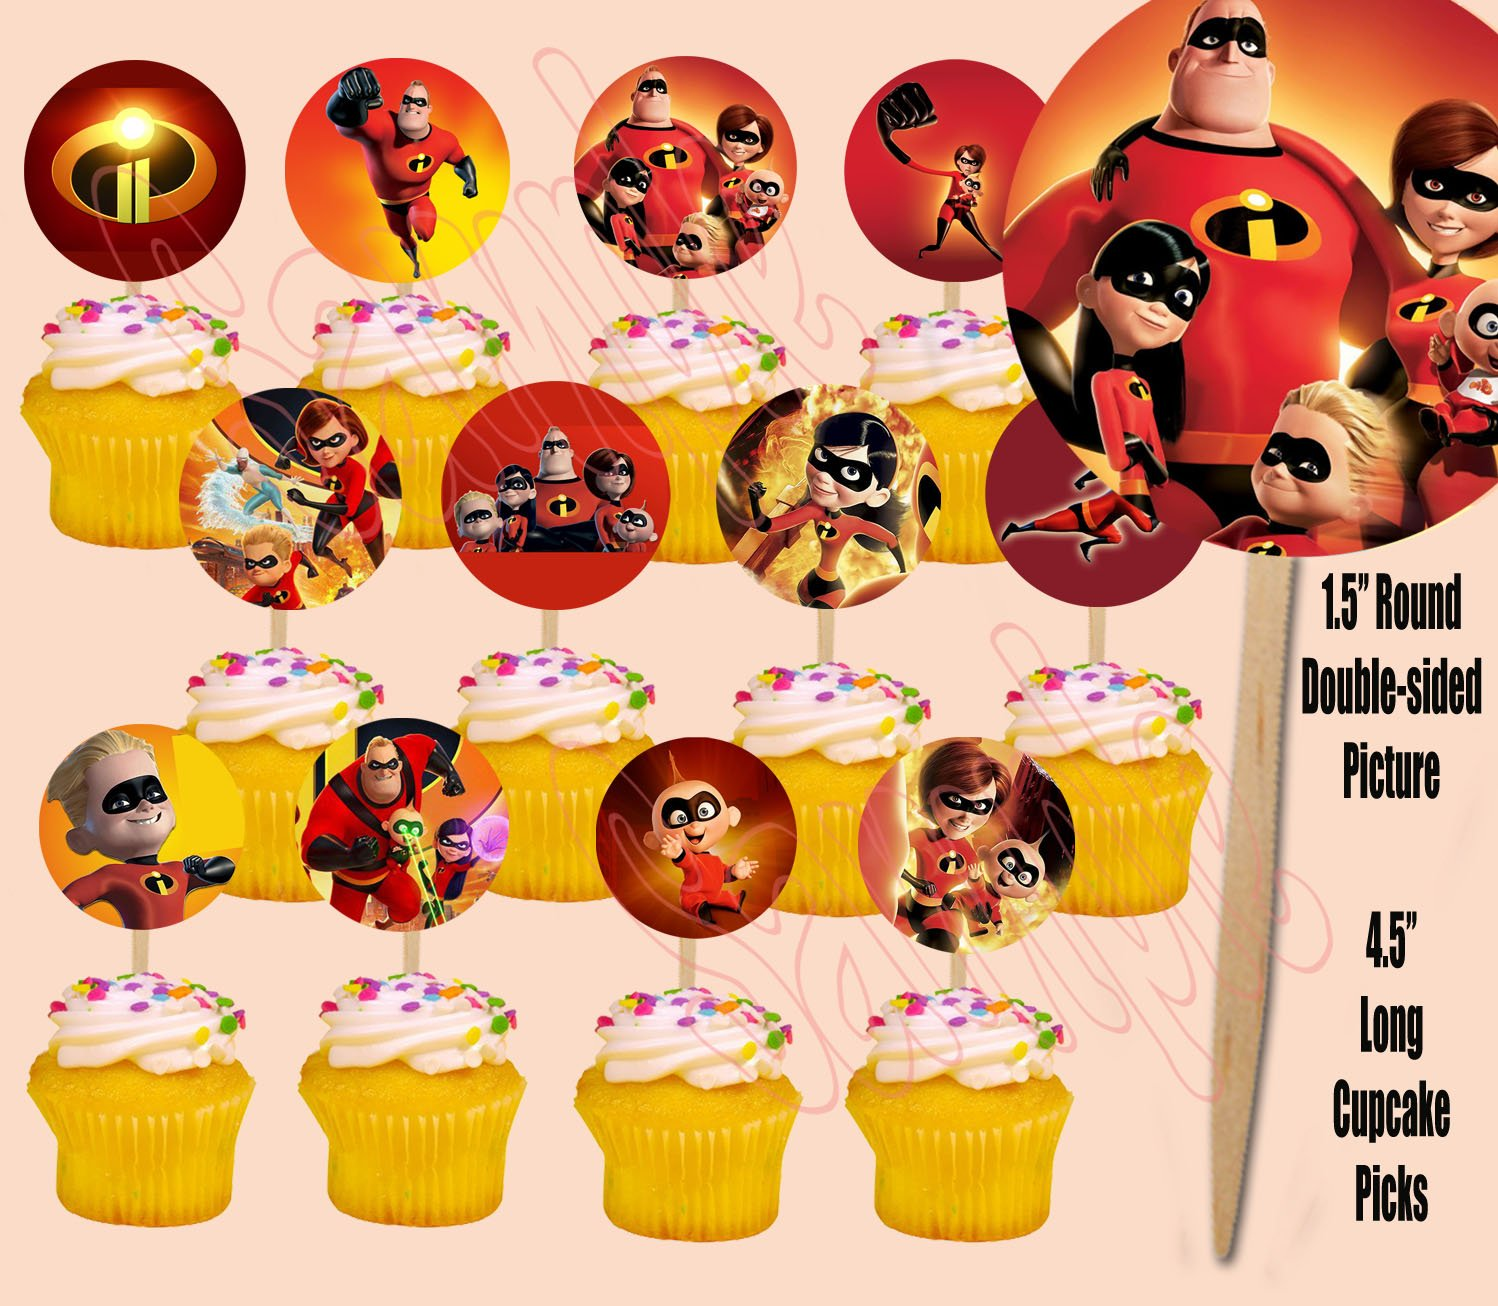 Party Over Here The Incredibles Cupcake Picks Cake Toppers -12 pcs Disney Movie, Elastigirl, Violet, Dash JackJack